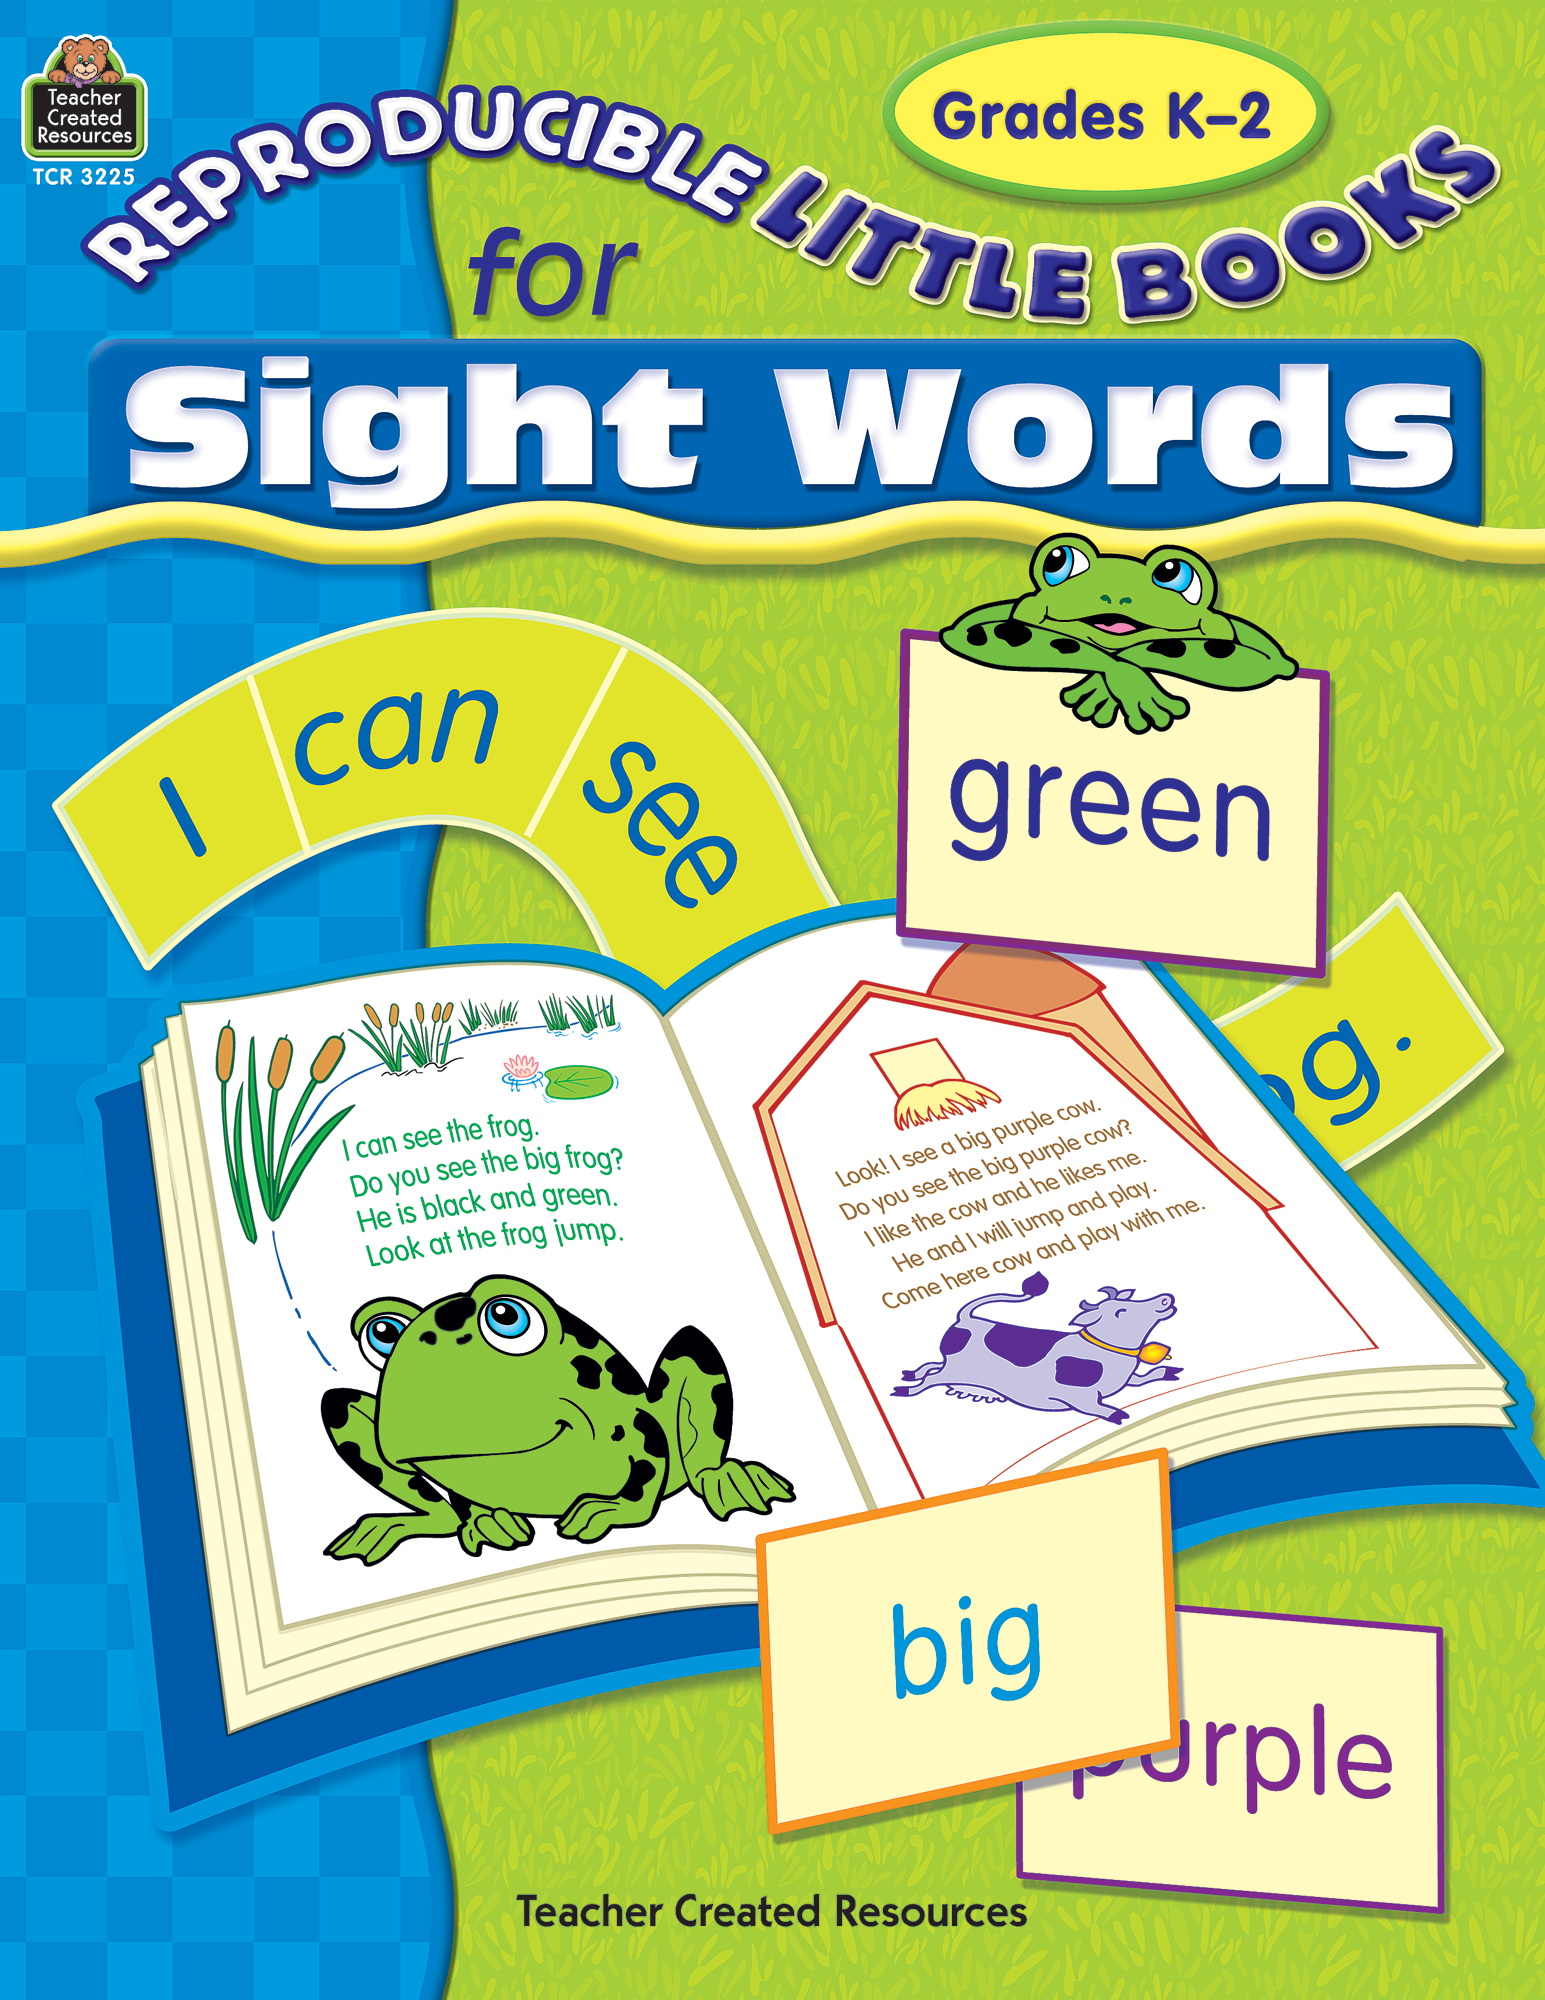 Reproducible Little Books for Sight Words - TCR3225 ...